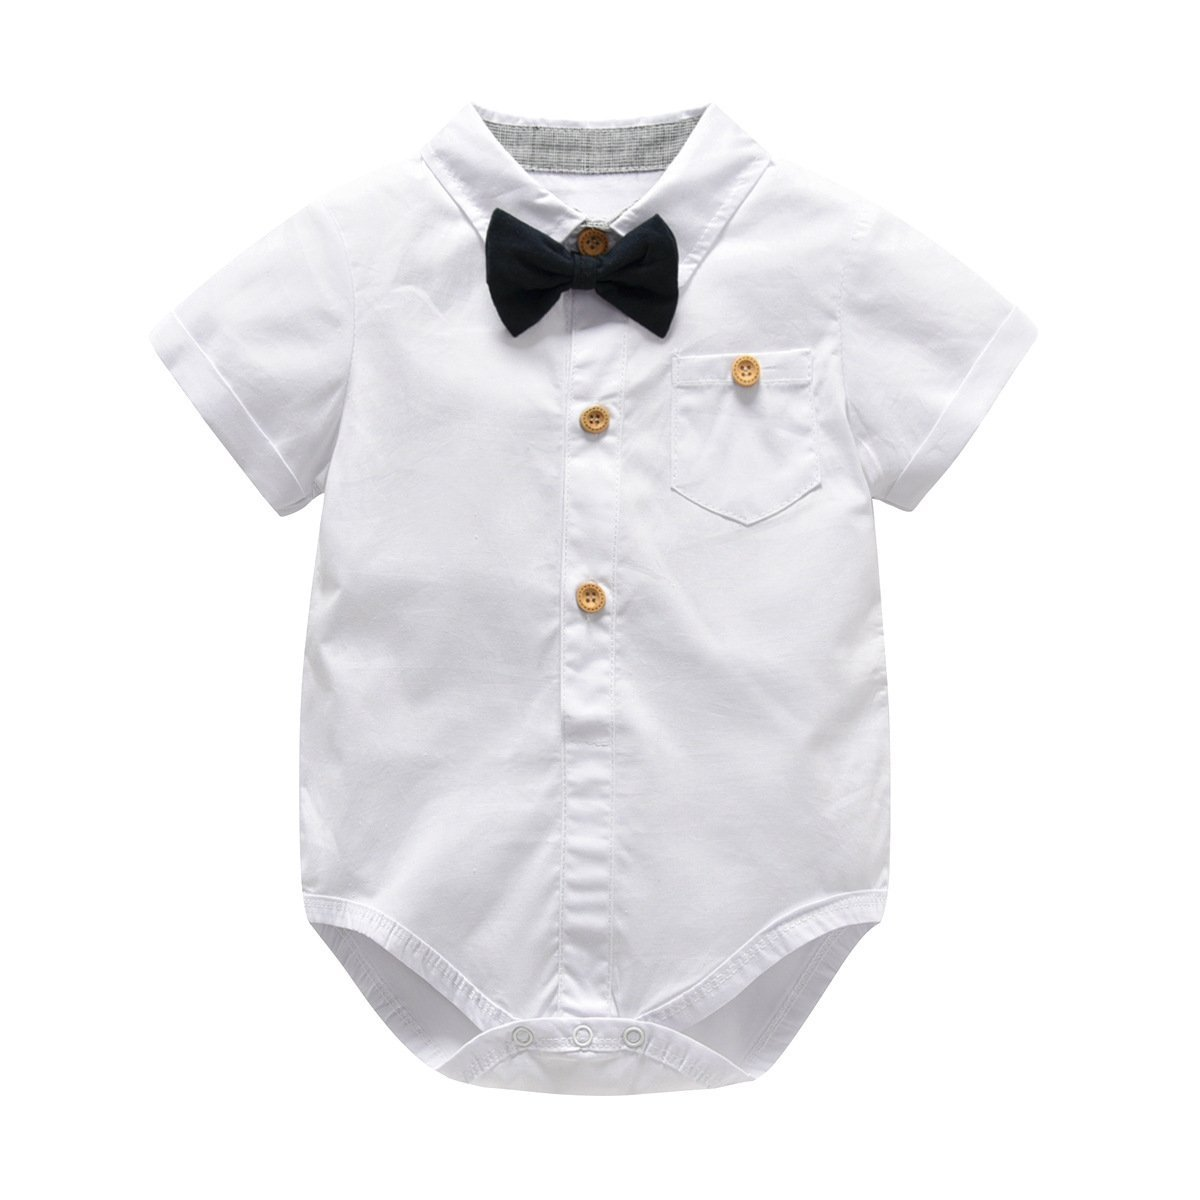 Newborn Baby Boy Romper and Overall Infant Toddler Formal Suit 4 Pcs Set Bowie Suspender Romper Shorts